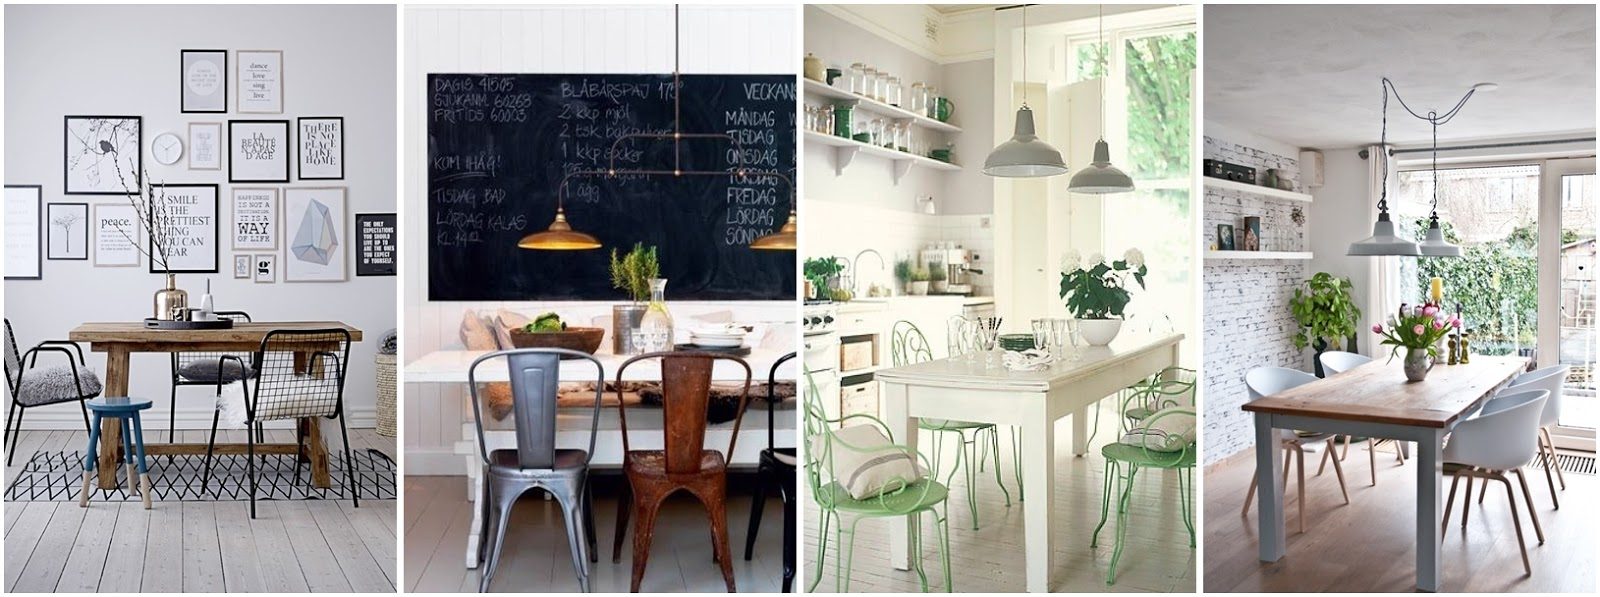 Interior inspiration dining room for Inspiration einrichtung